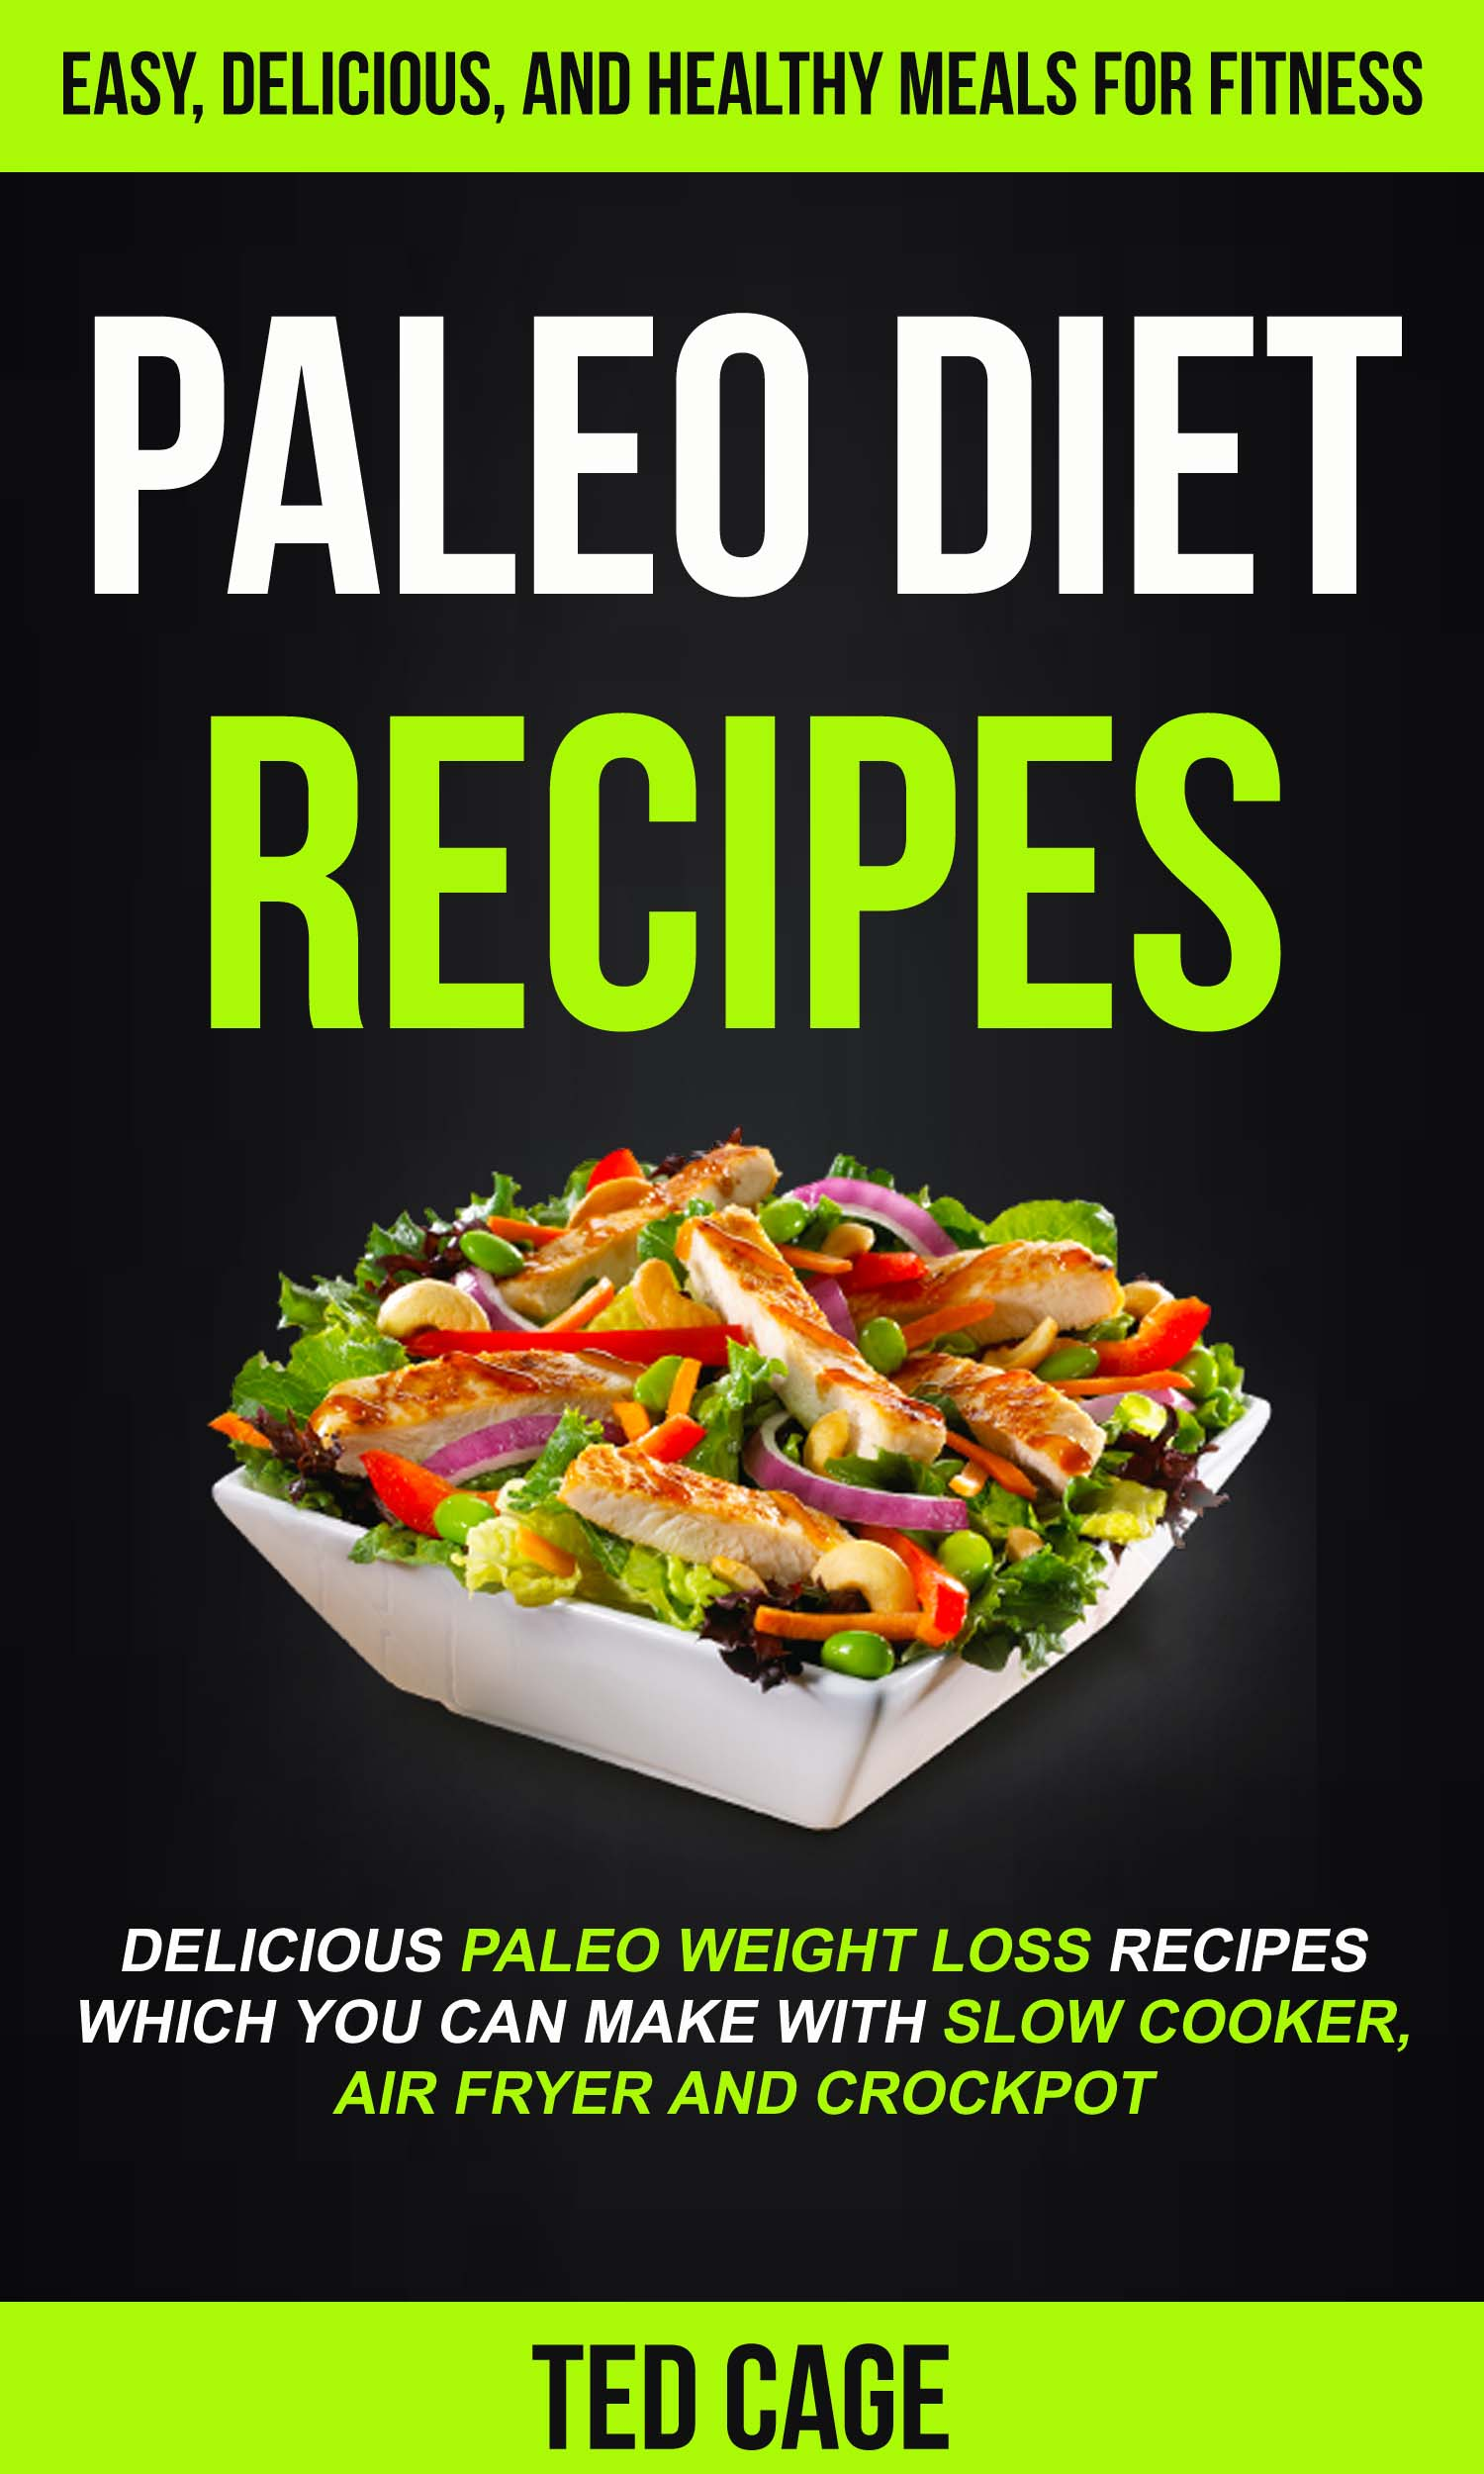 Paleo diet recipes: easy, delicious and healthy meals for fitness